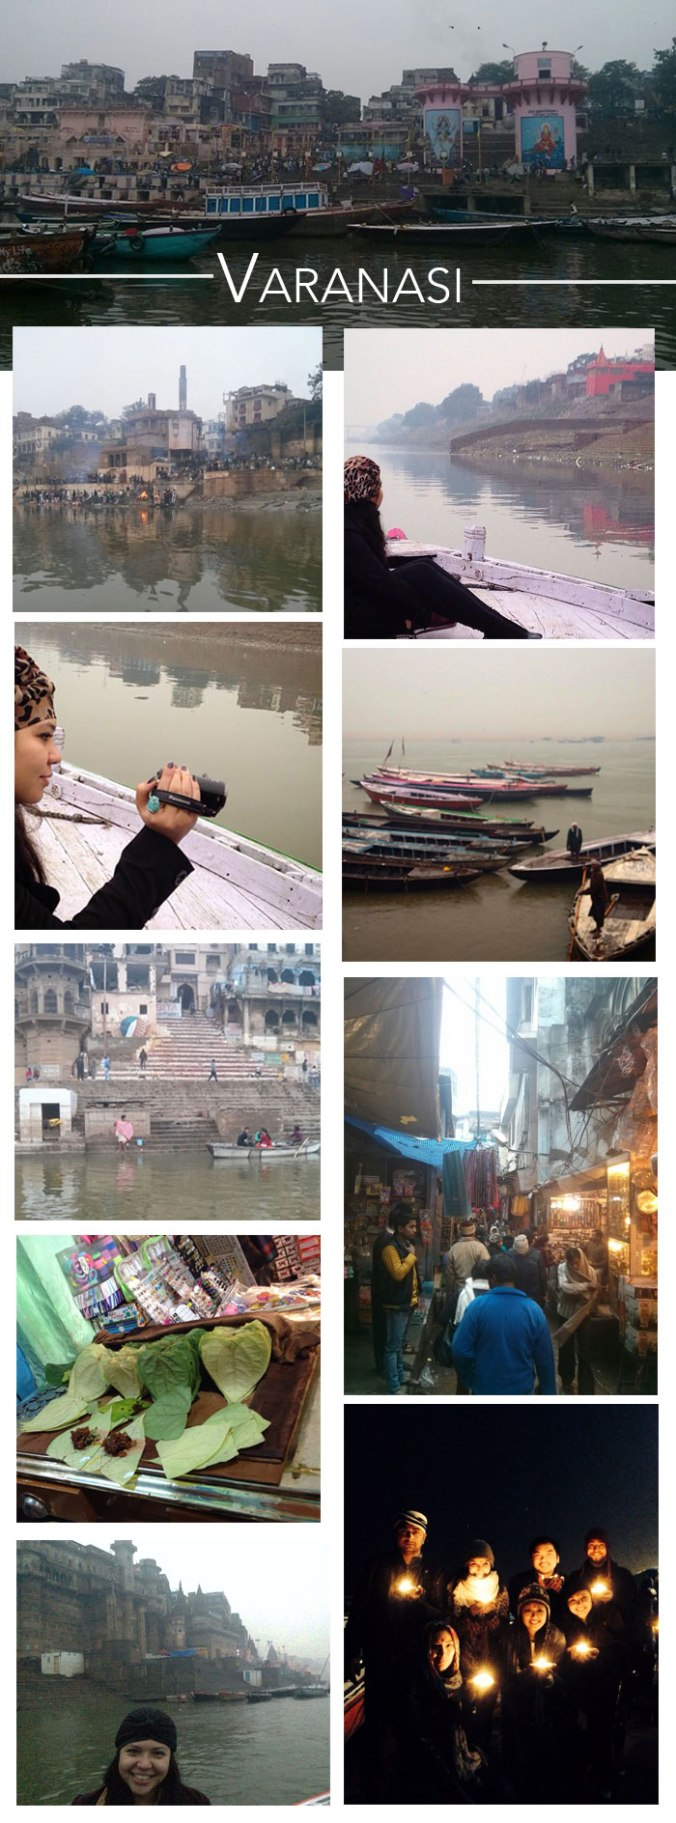 ano-novo-varanasi-new-year-india-japa-viajante